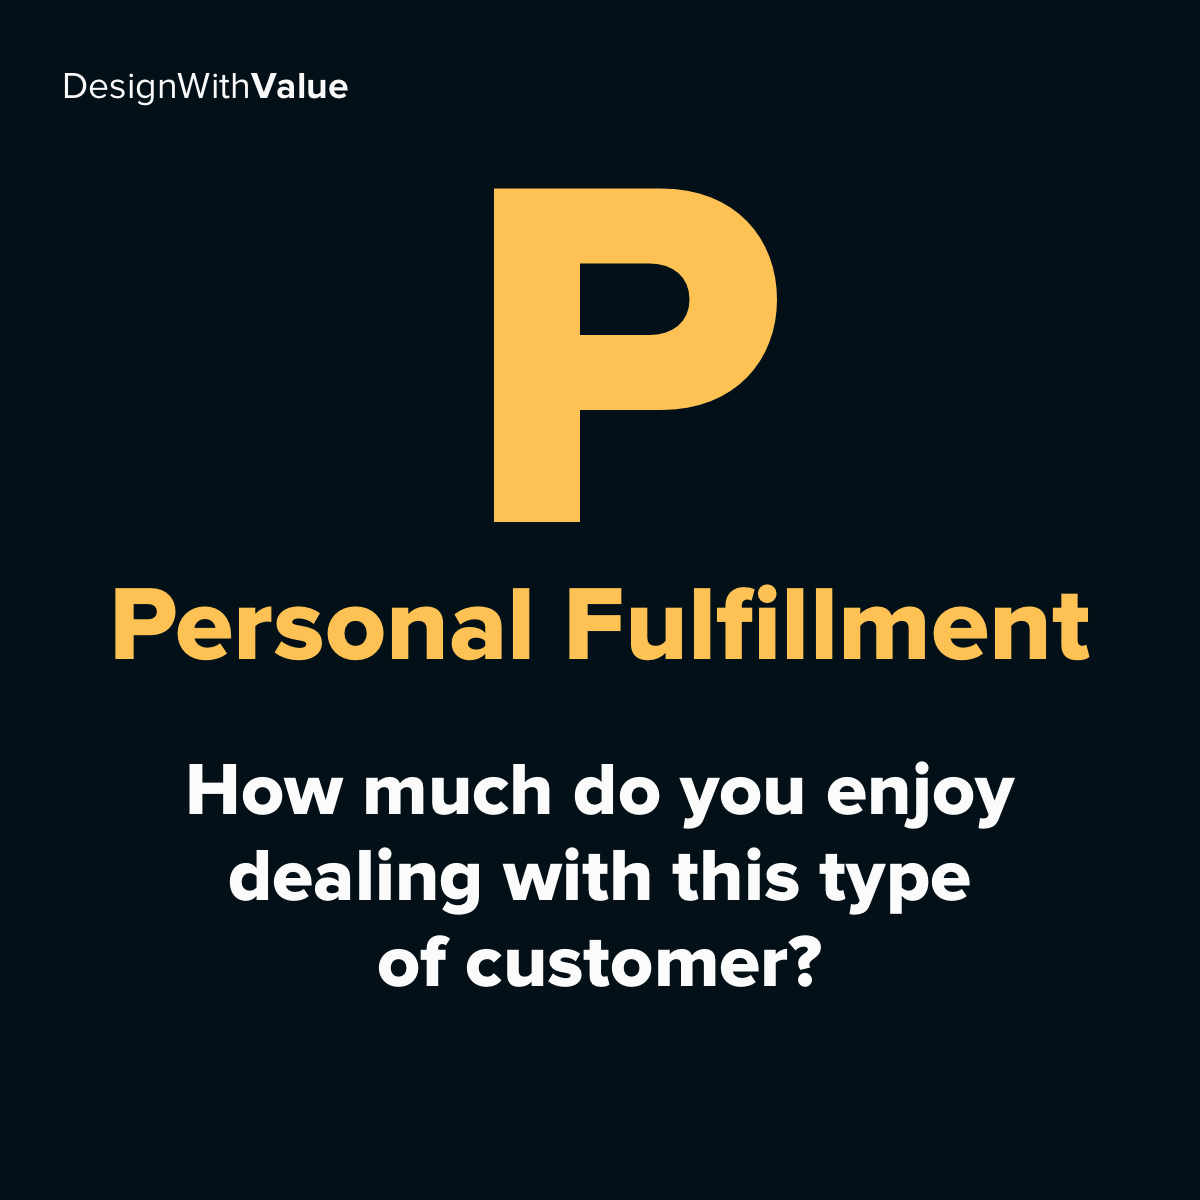 P = Personal fulfillment. How much do you enjoy dealing with this type of customer?